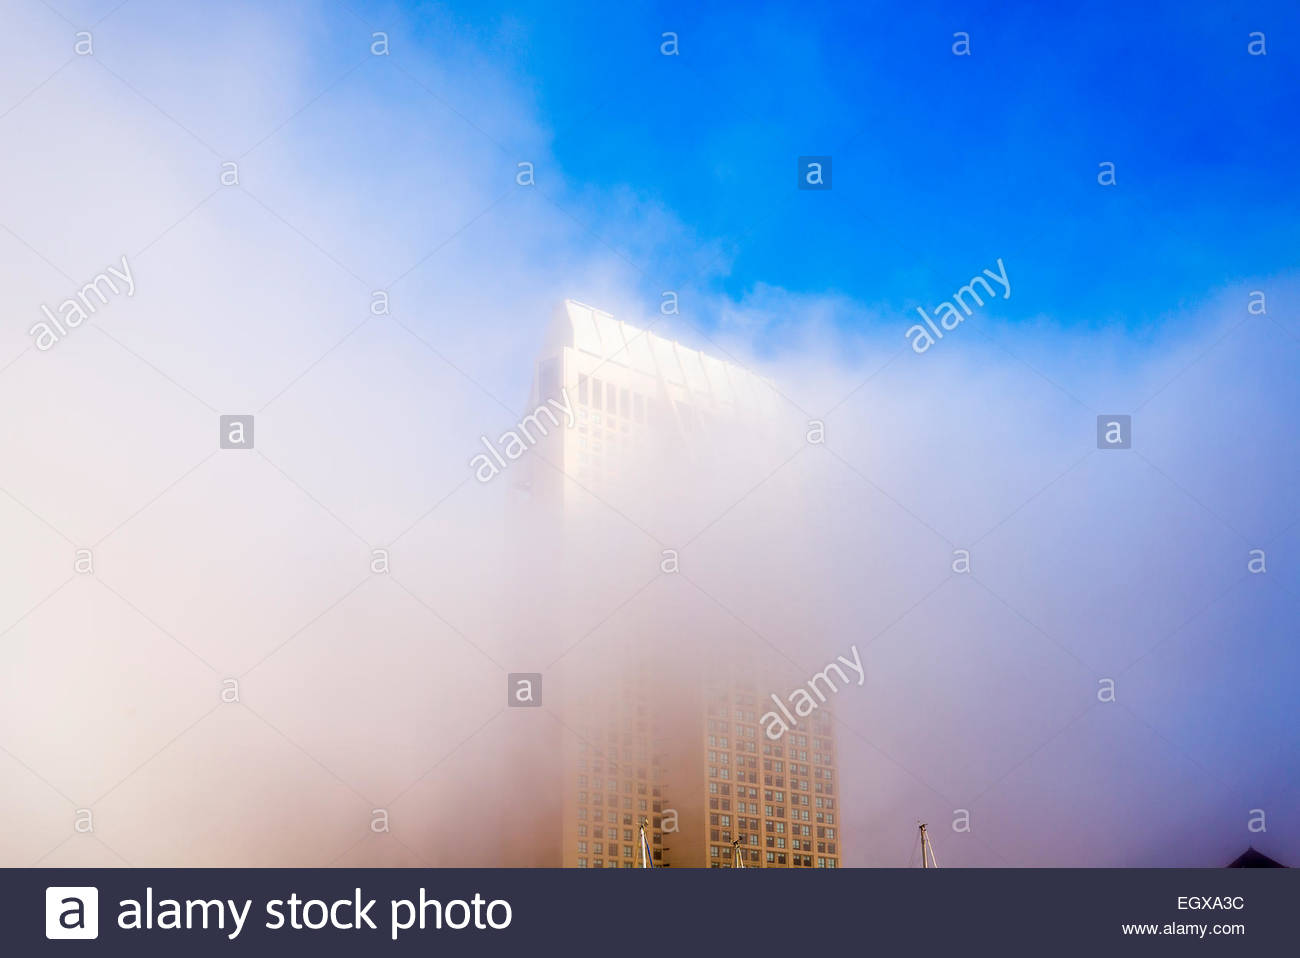 Fog partially covering a building at Embarcadero Marina Park. San Diego, California, United States. - Stock Image